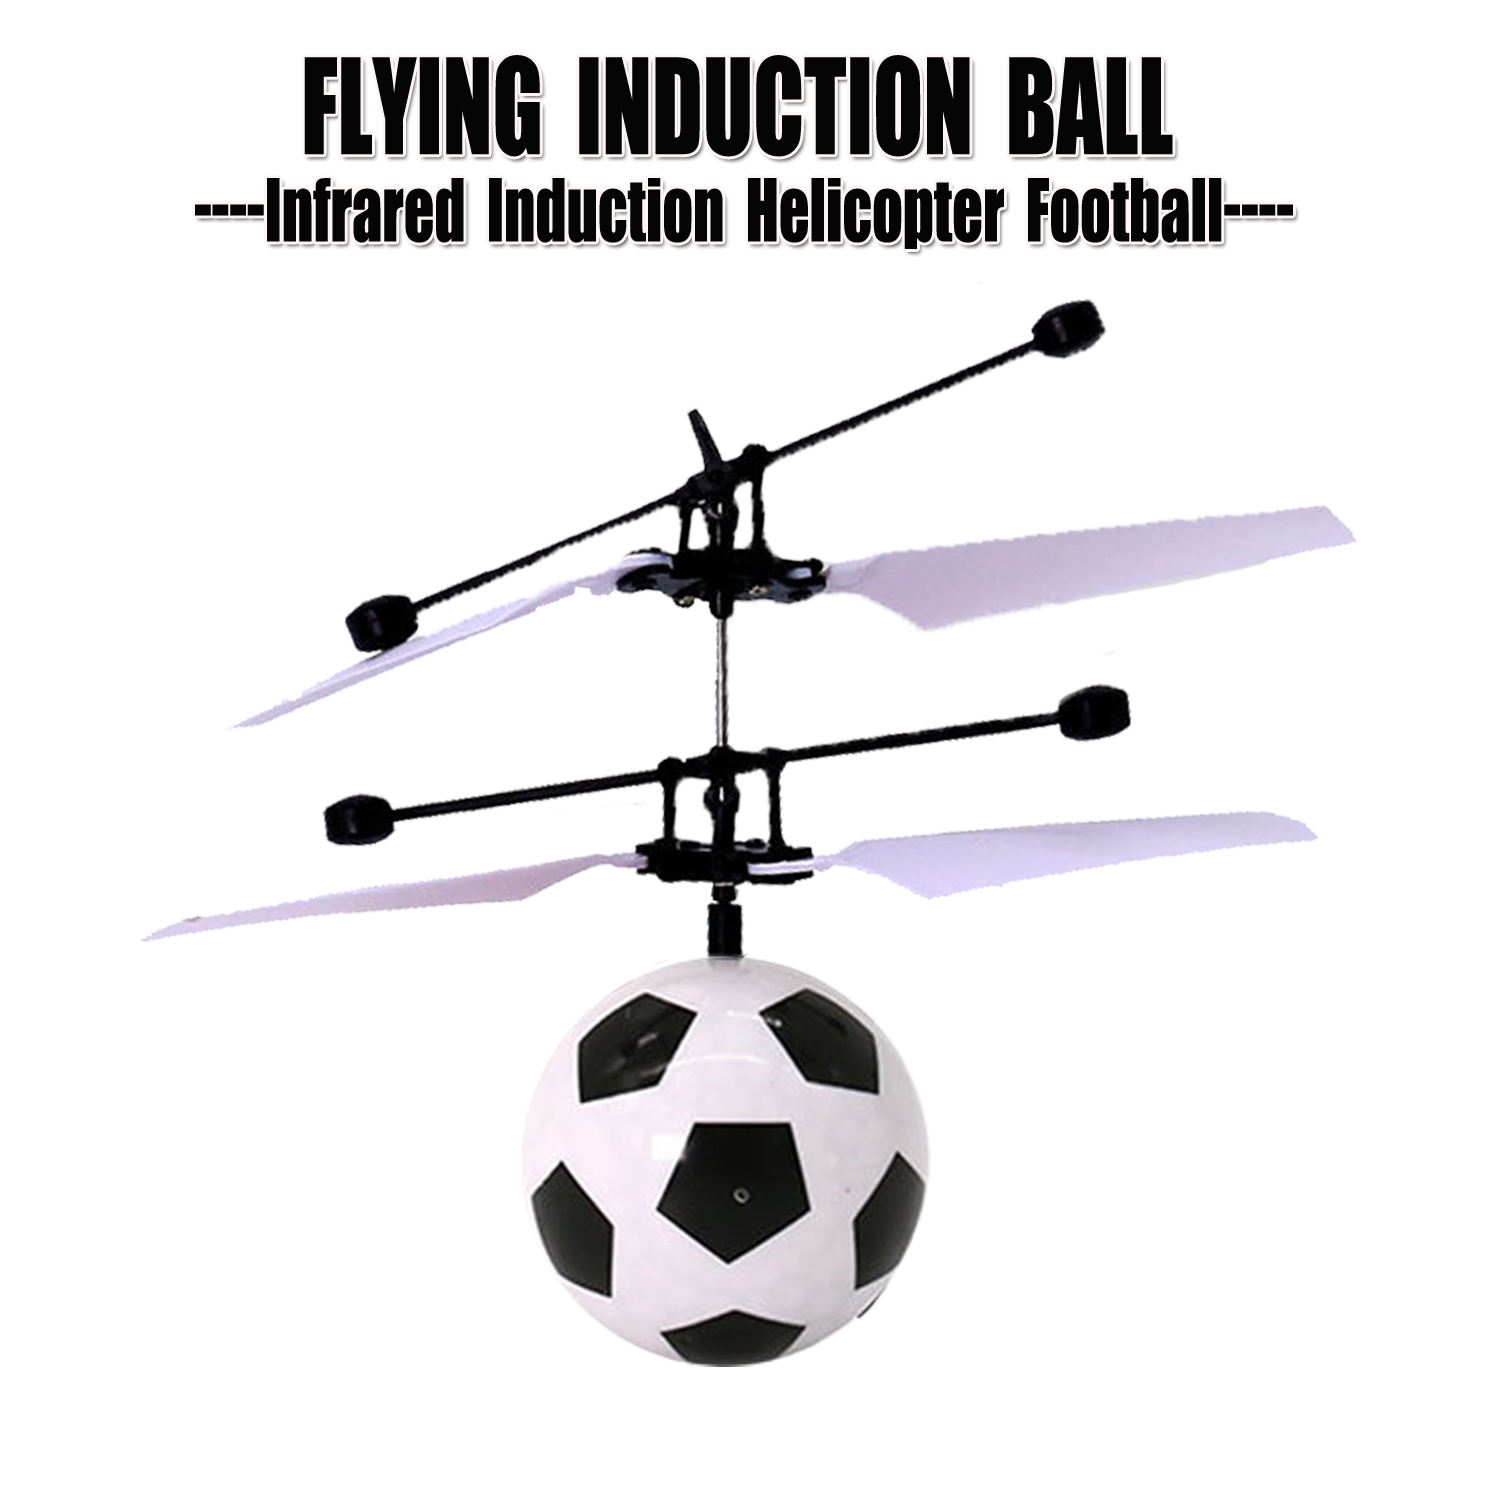 Magic Infrared Induction Soccer Rc Flying Ball With LED Lighting Gesture Sensor Mini Ufo Helicopter Football Drone Kid Toys